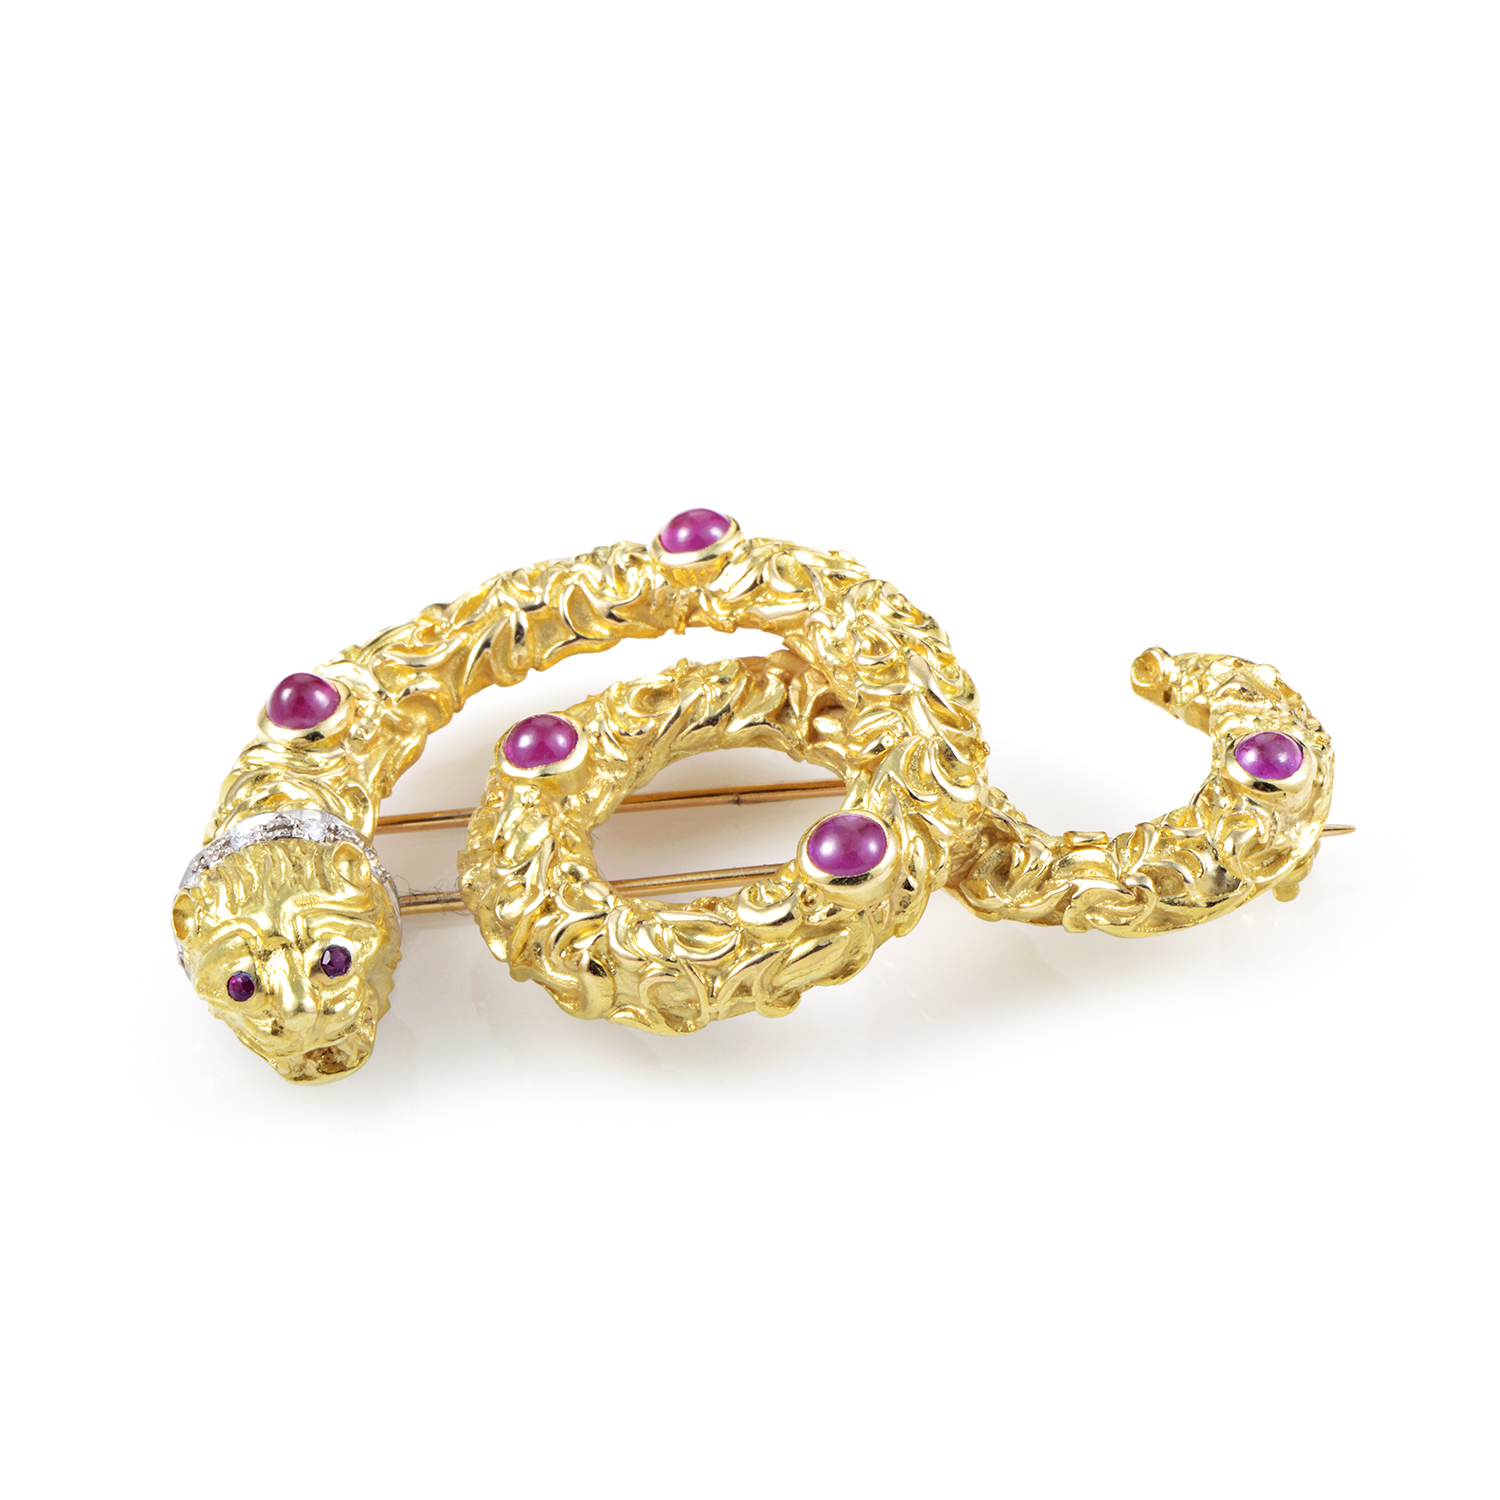 Ilias Lalaounis Women's 18K Multi-Tone Gold Diamond & Ruby Snake Pin